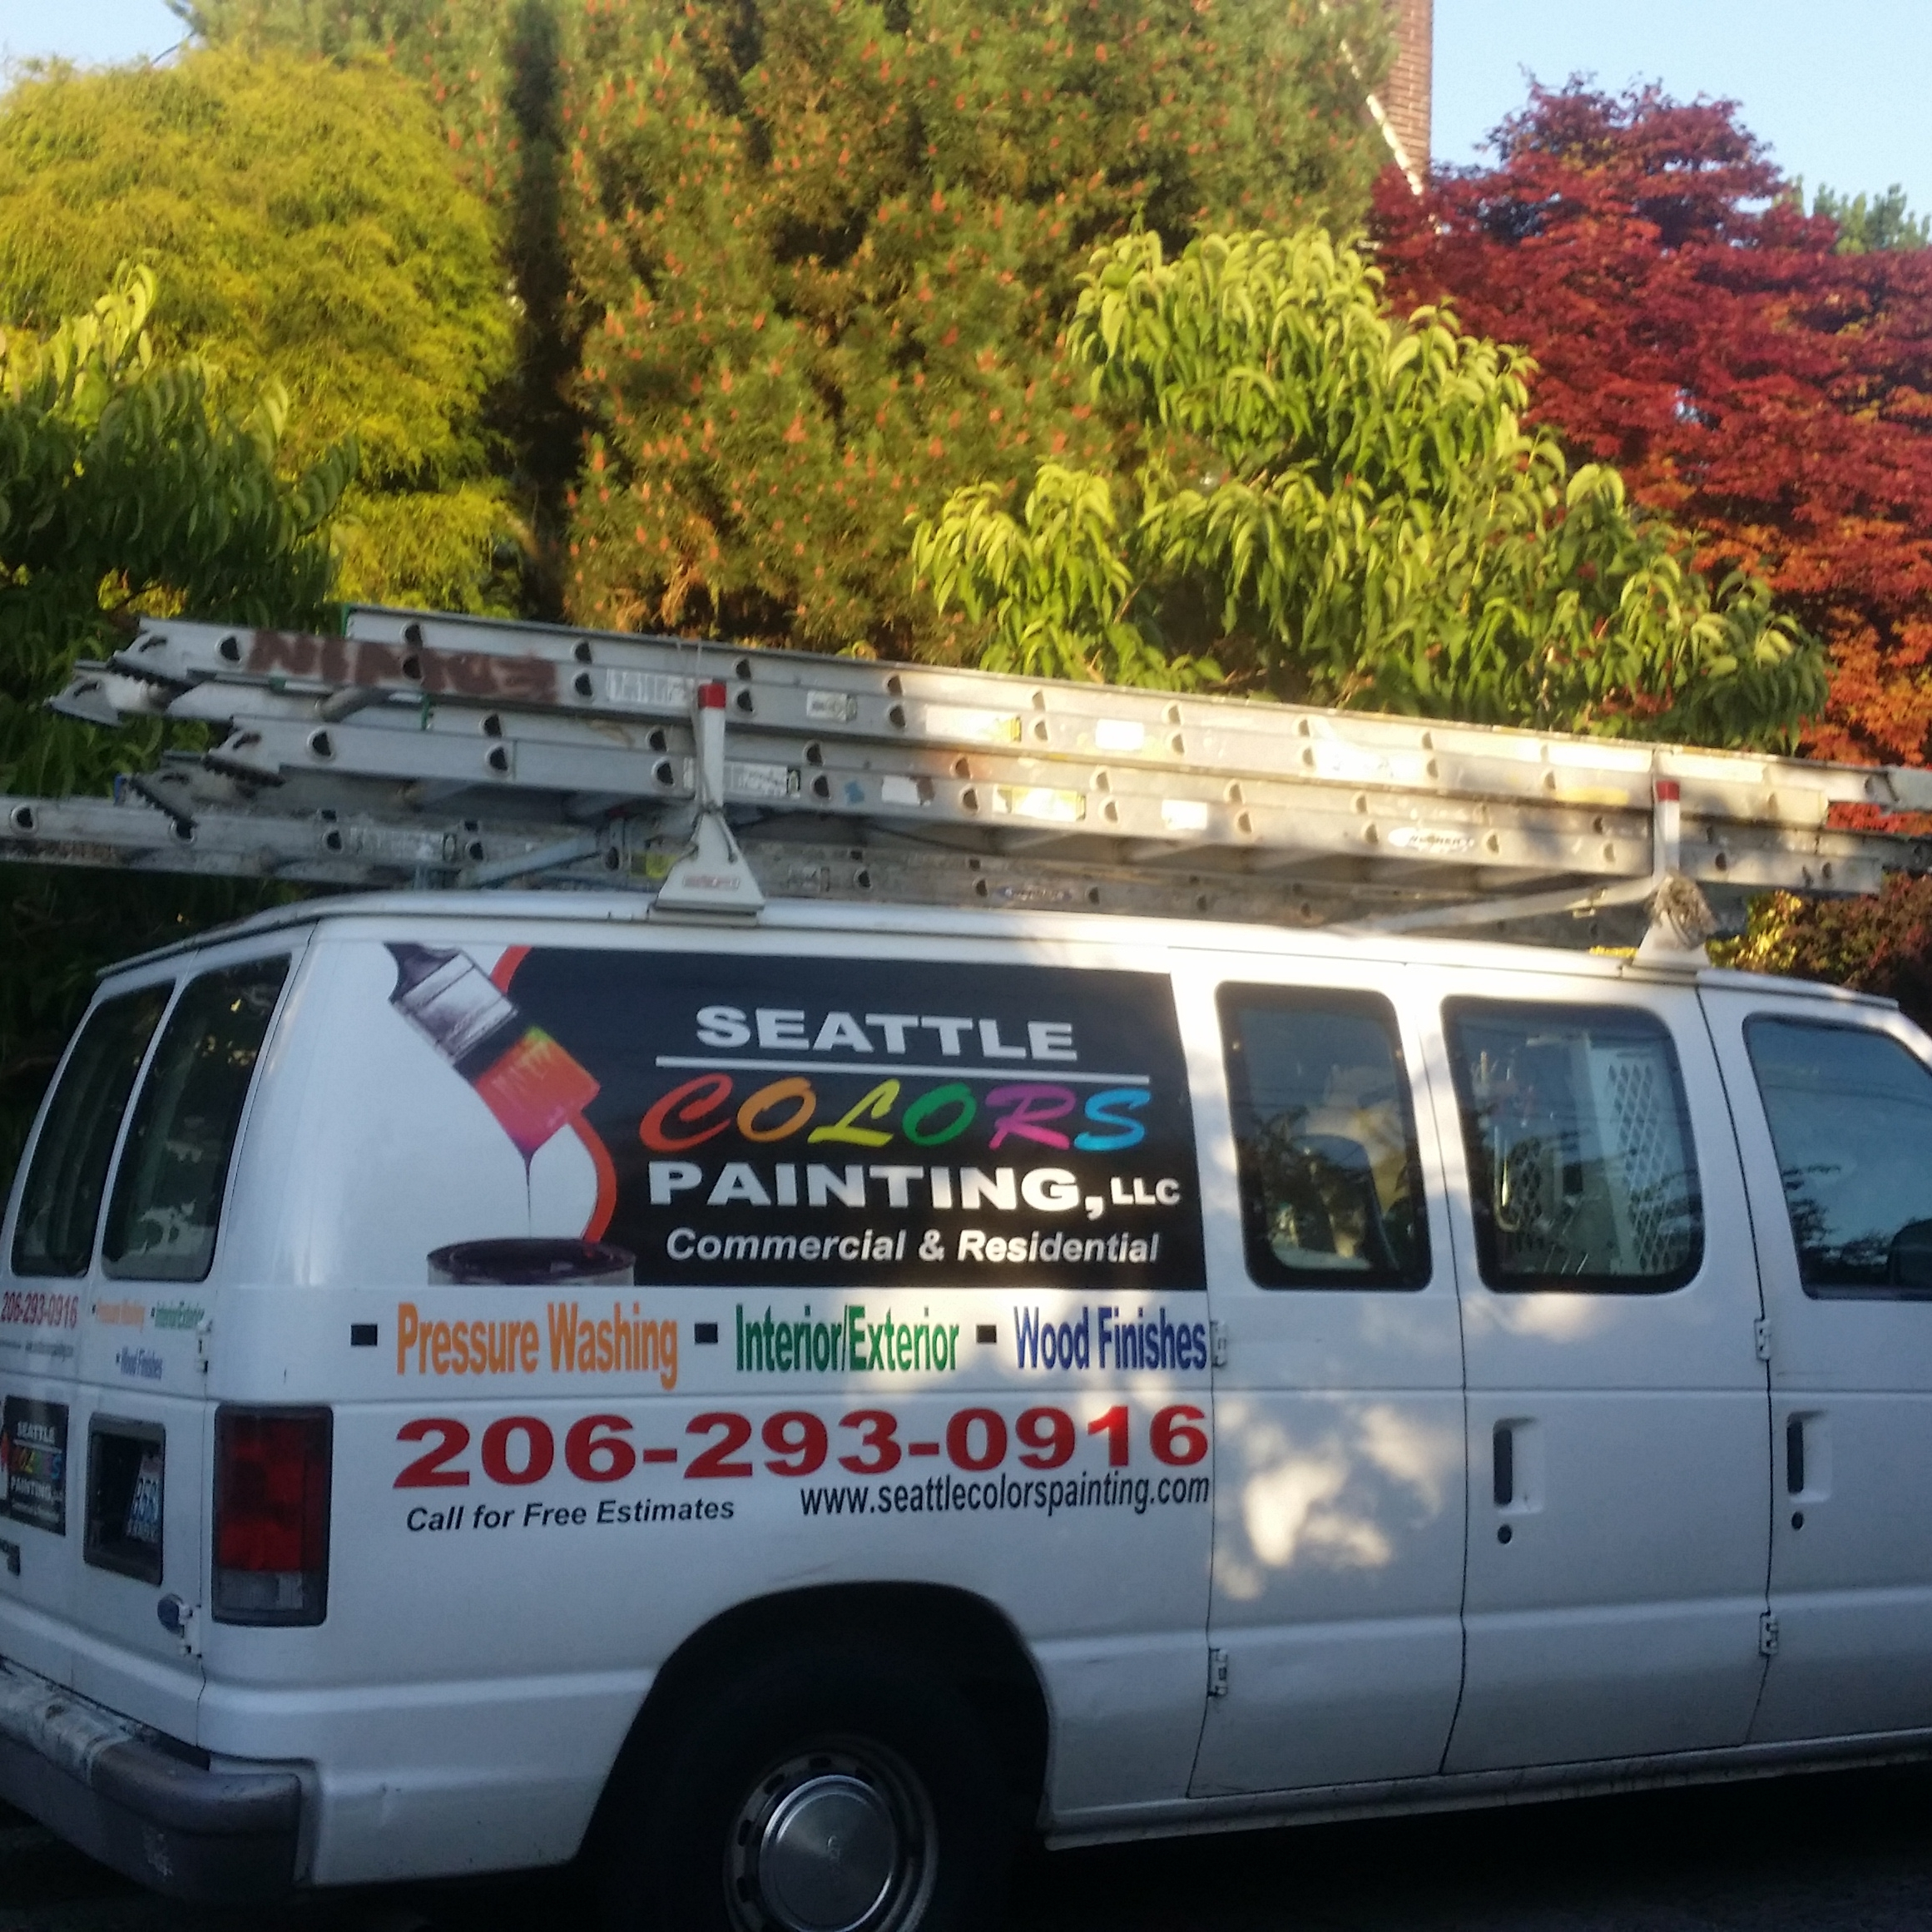 Seattle Colors Painting LLC